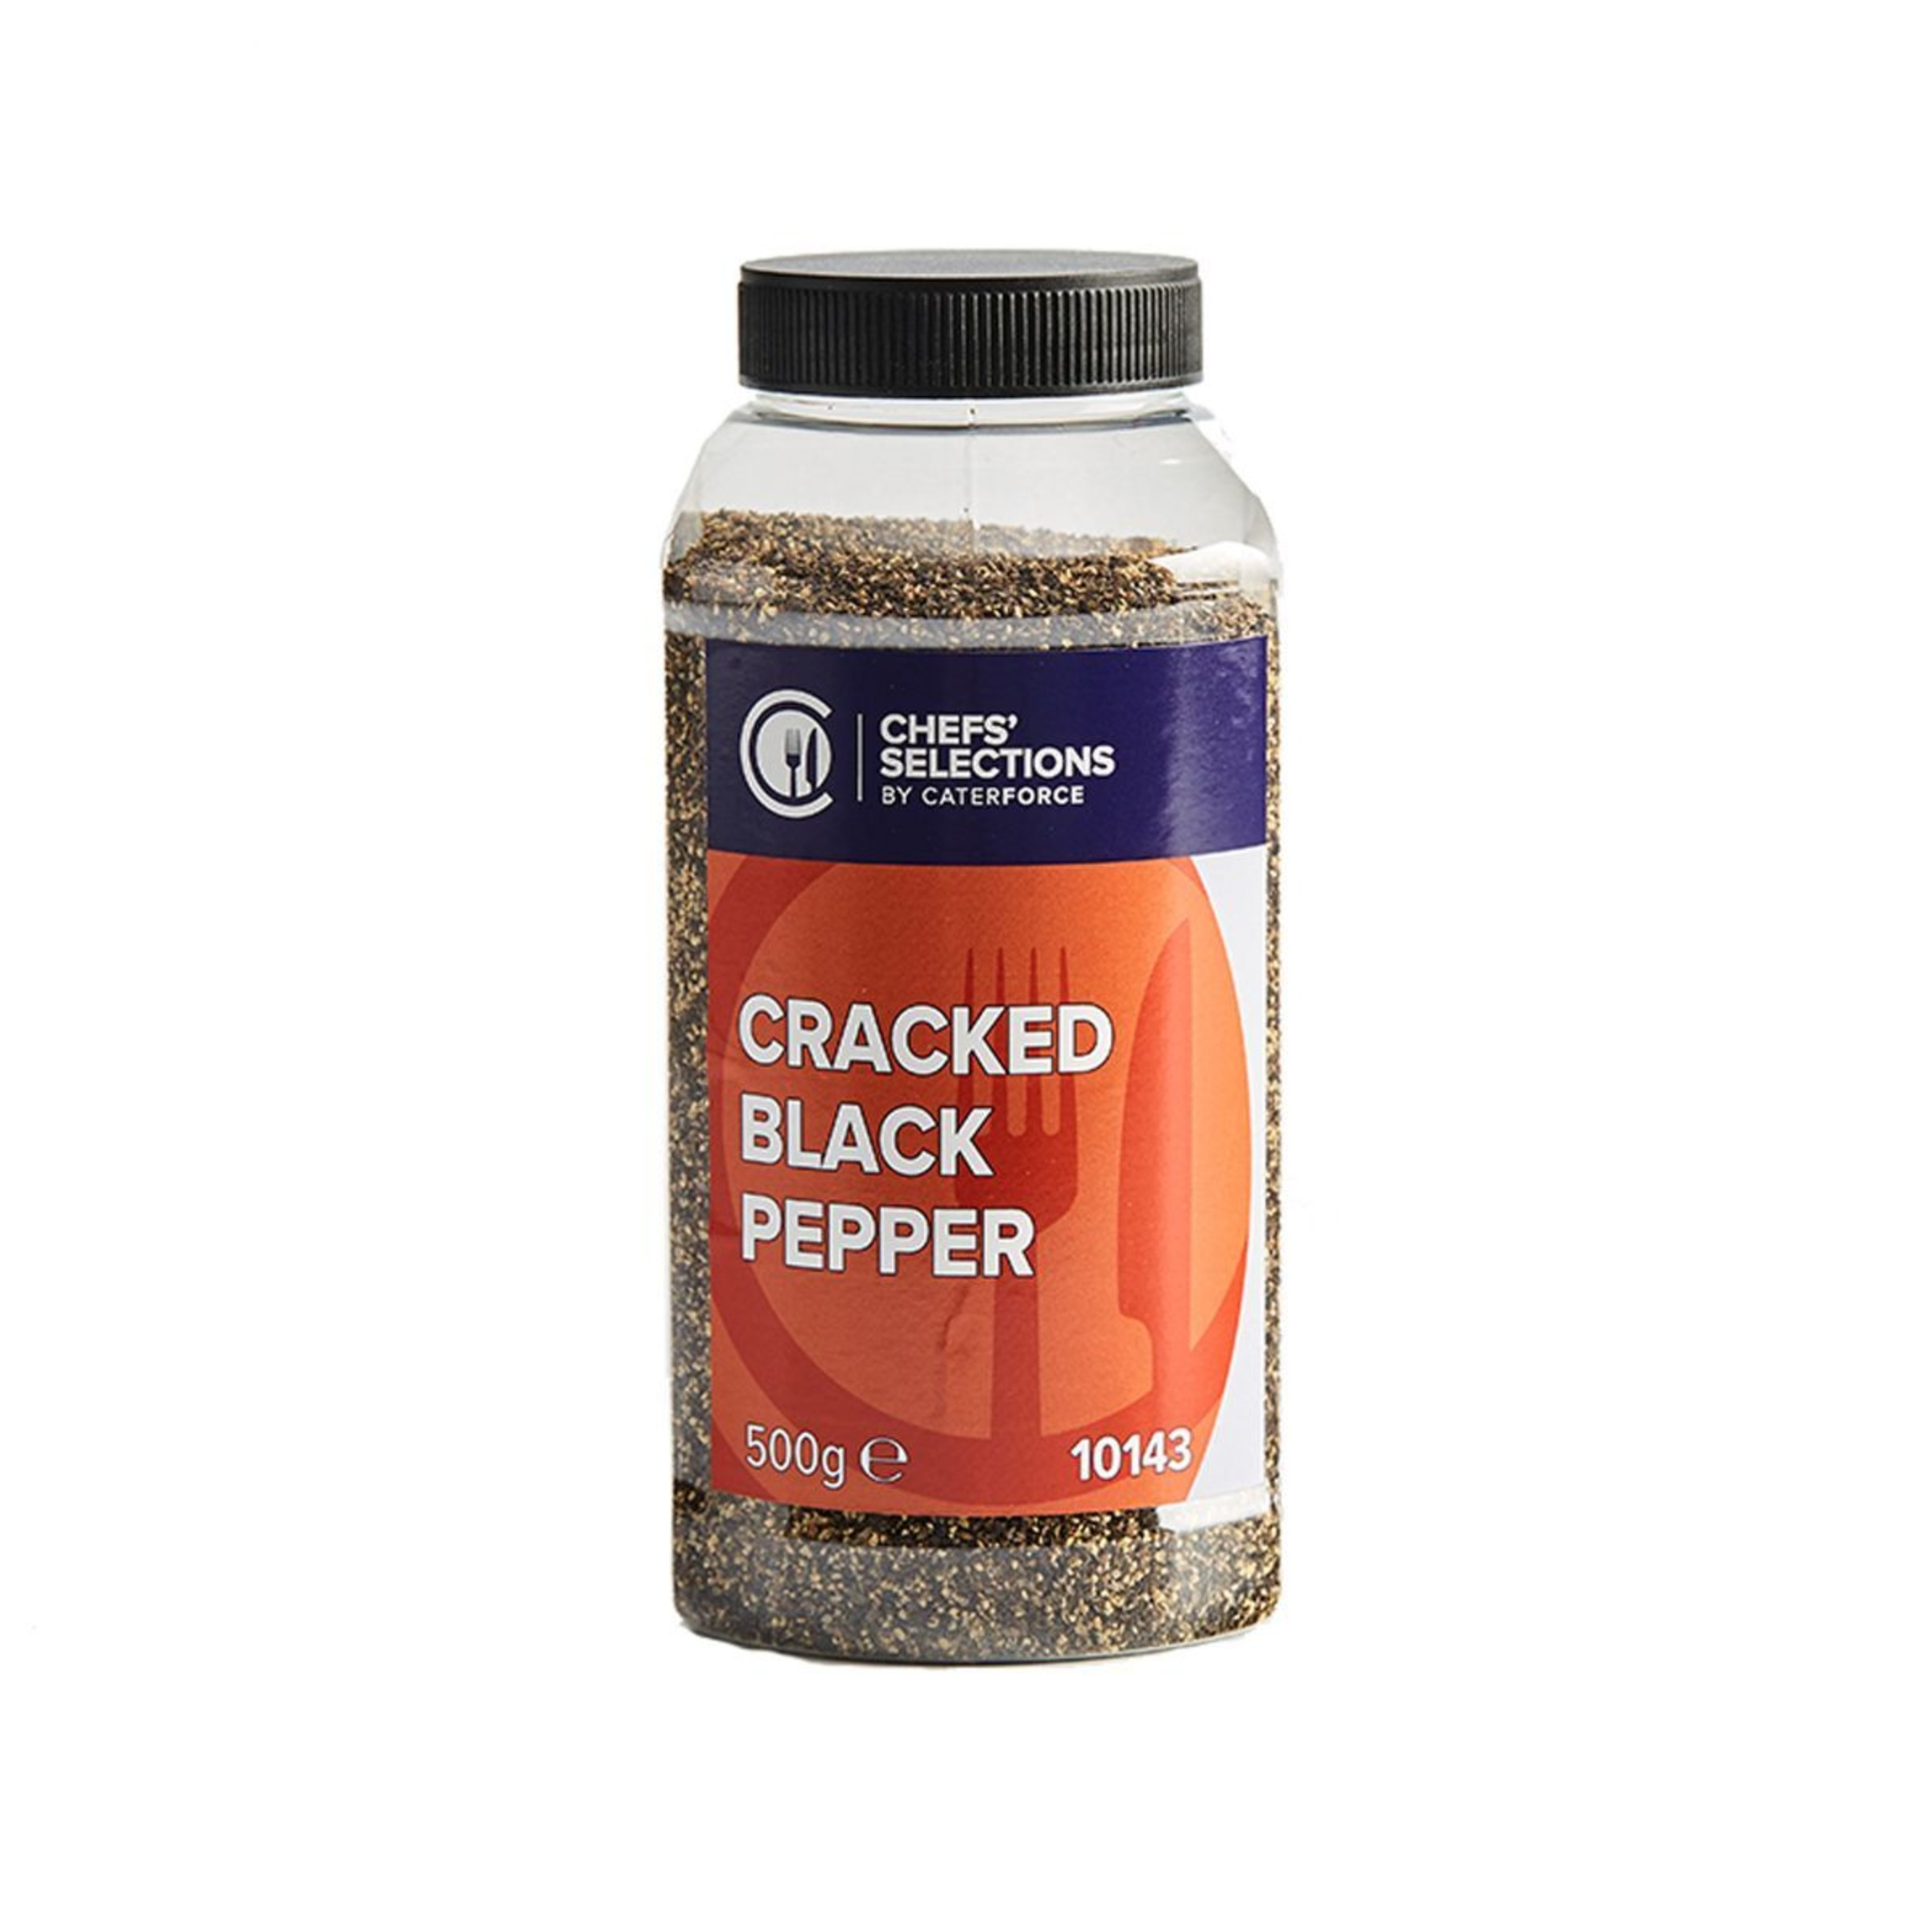 Cracked Black Pepper 1x500g